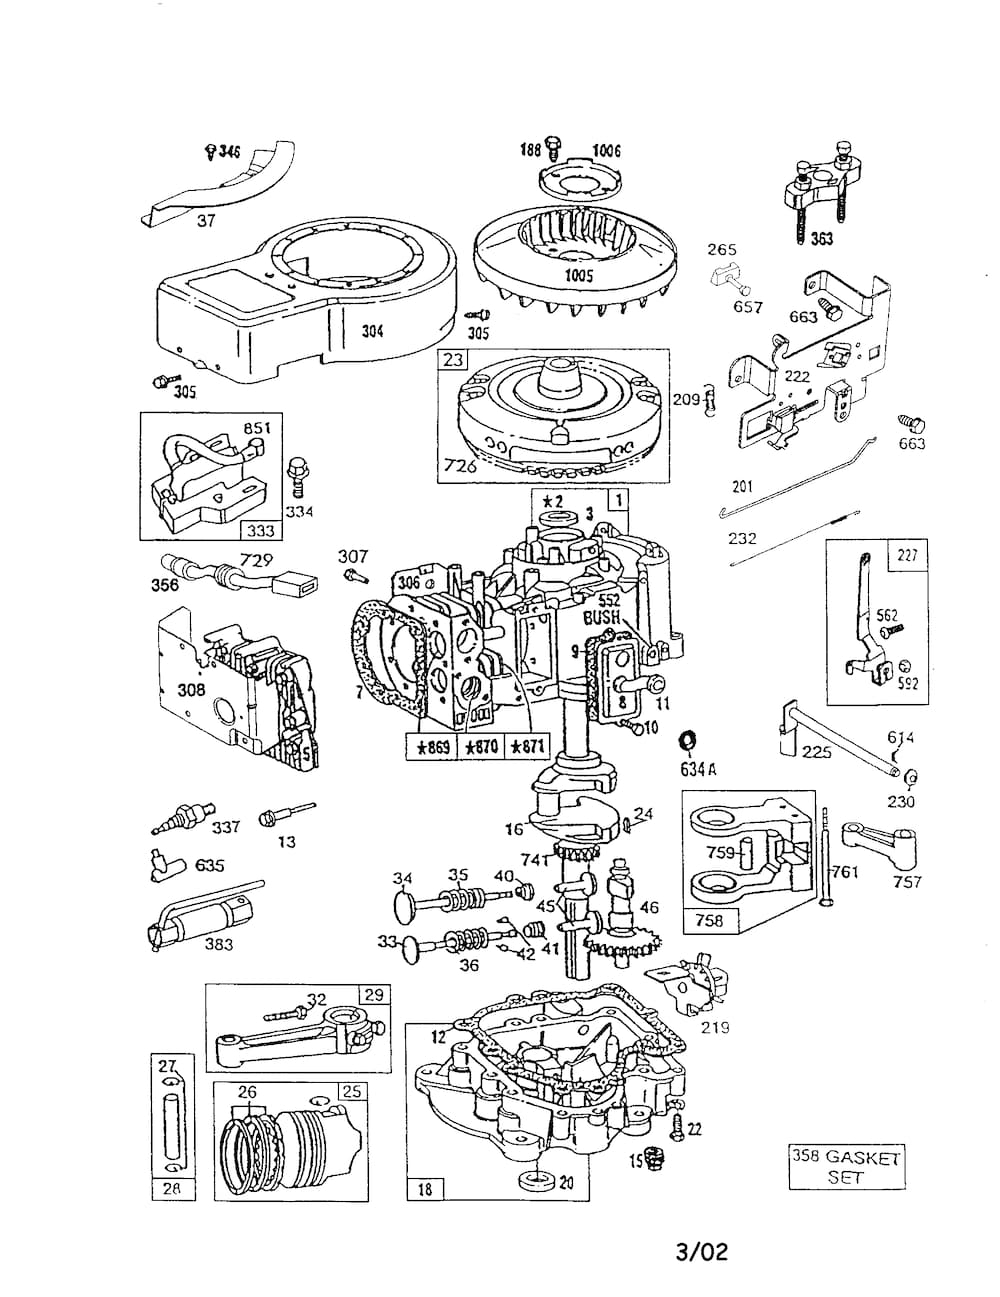 briggs stratton engine electrical diagram